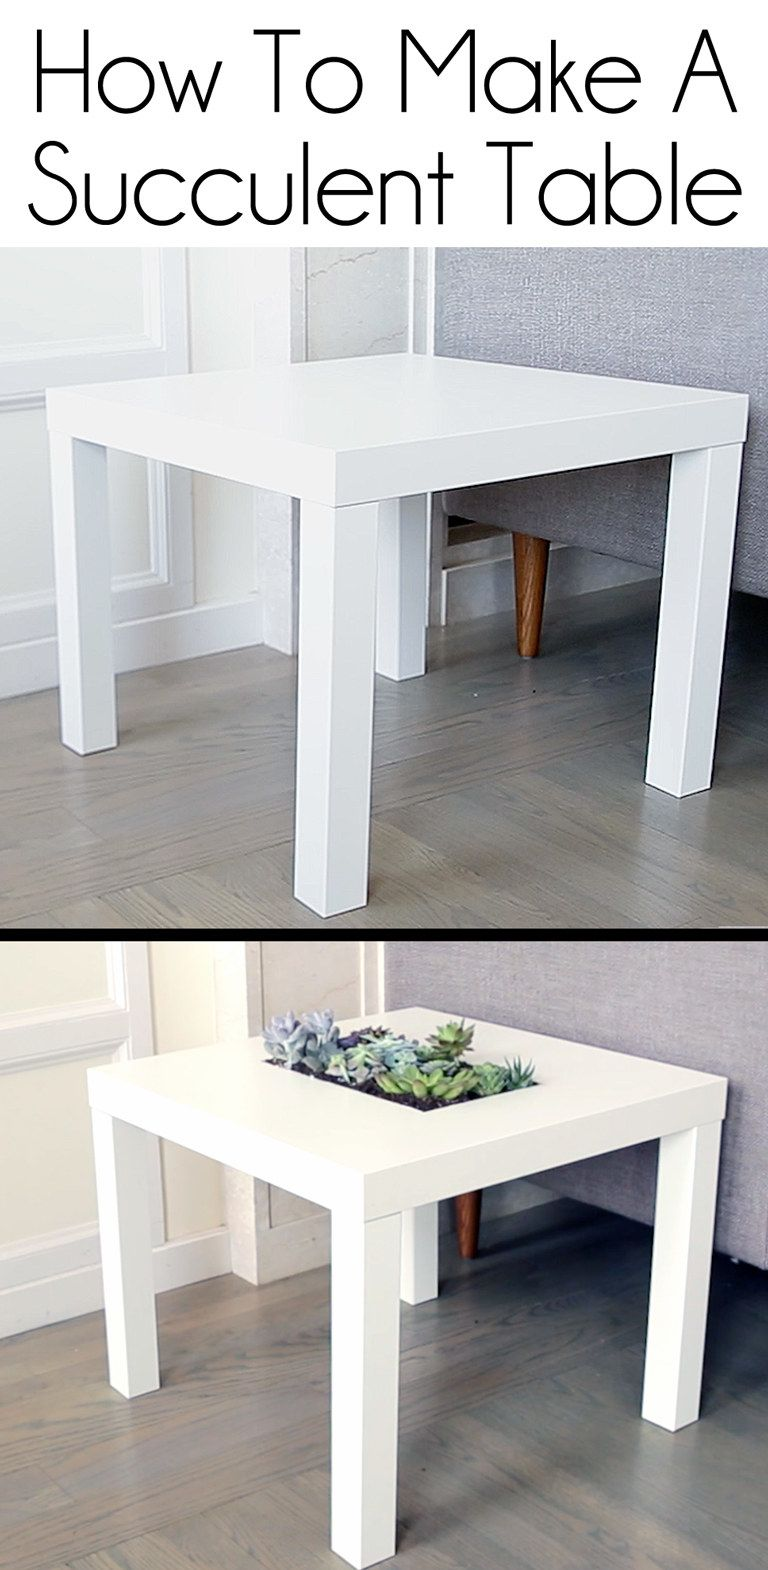 Get Fancy Af And Turn A Table Into A Succulent Garden Ikea Table Hack Ikea Side Table Ikea Table